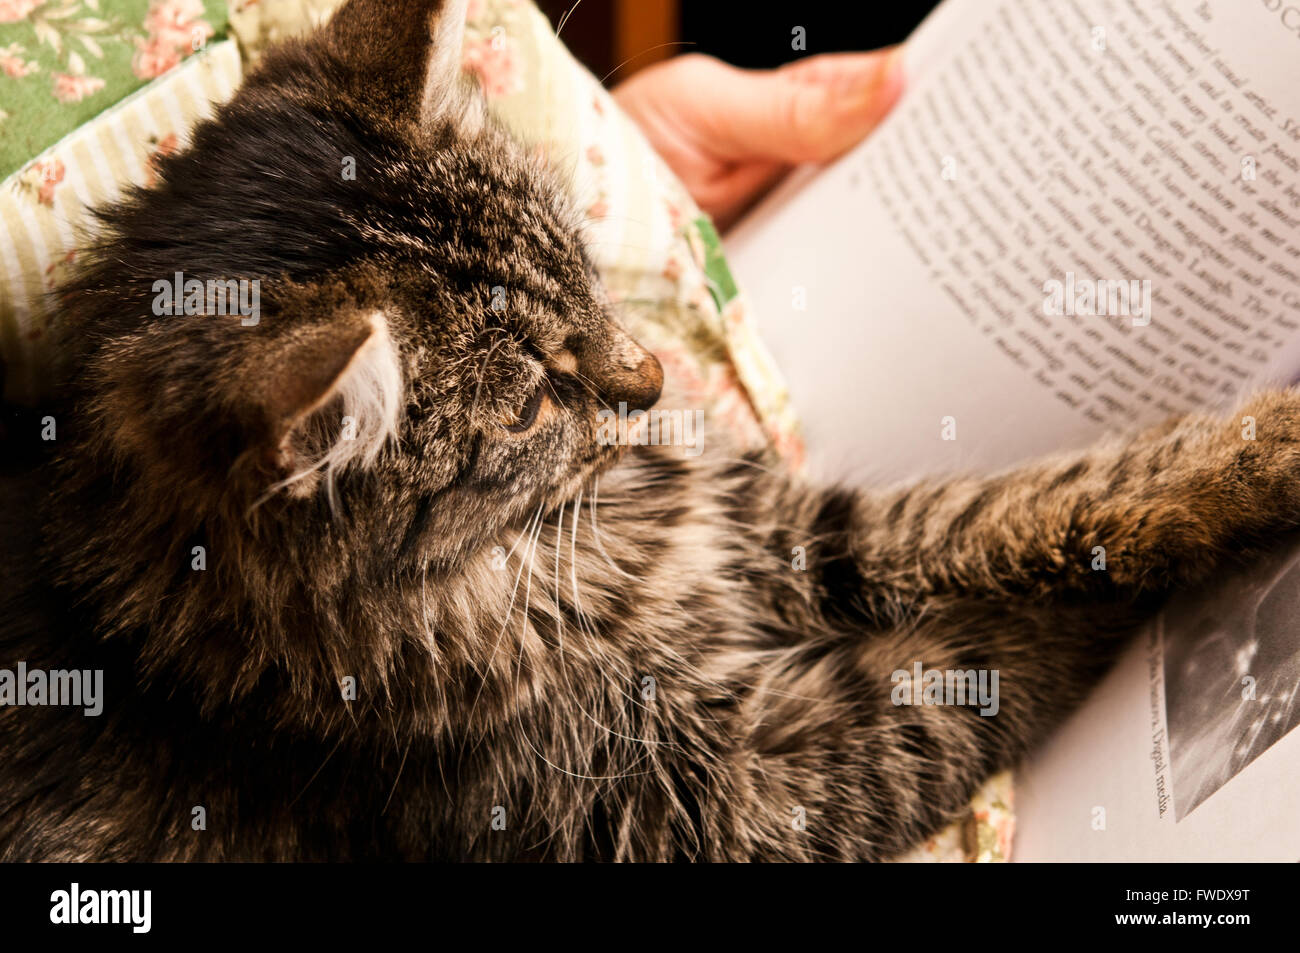 domestic cat reading a book - Stock Image